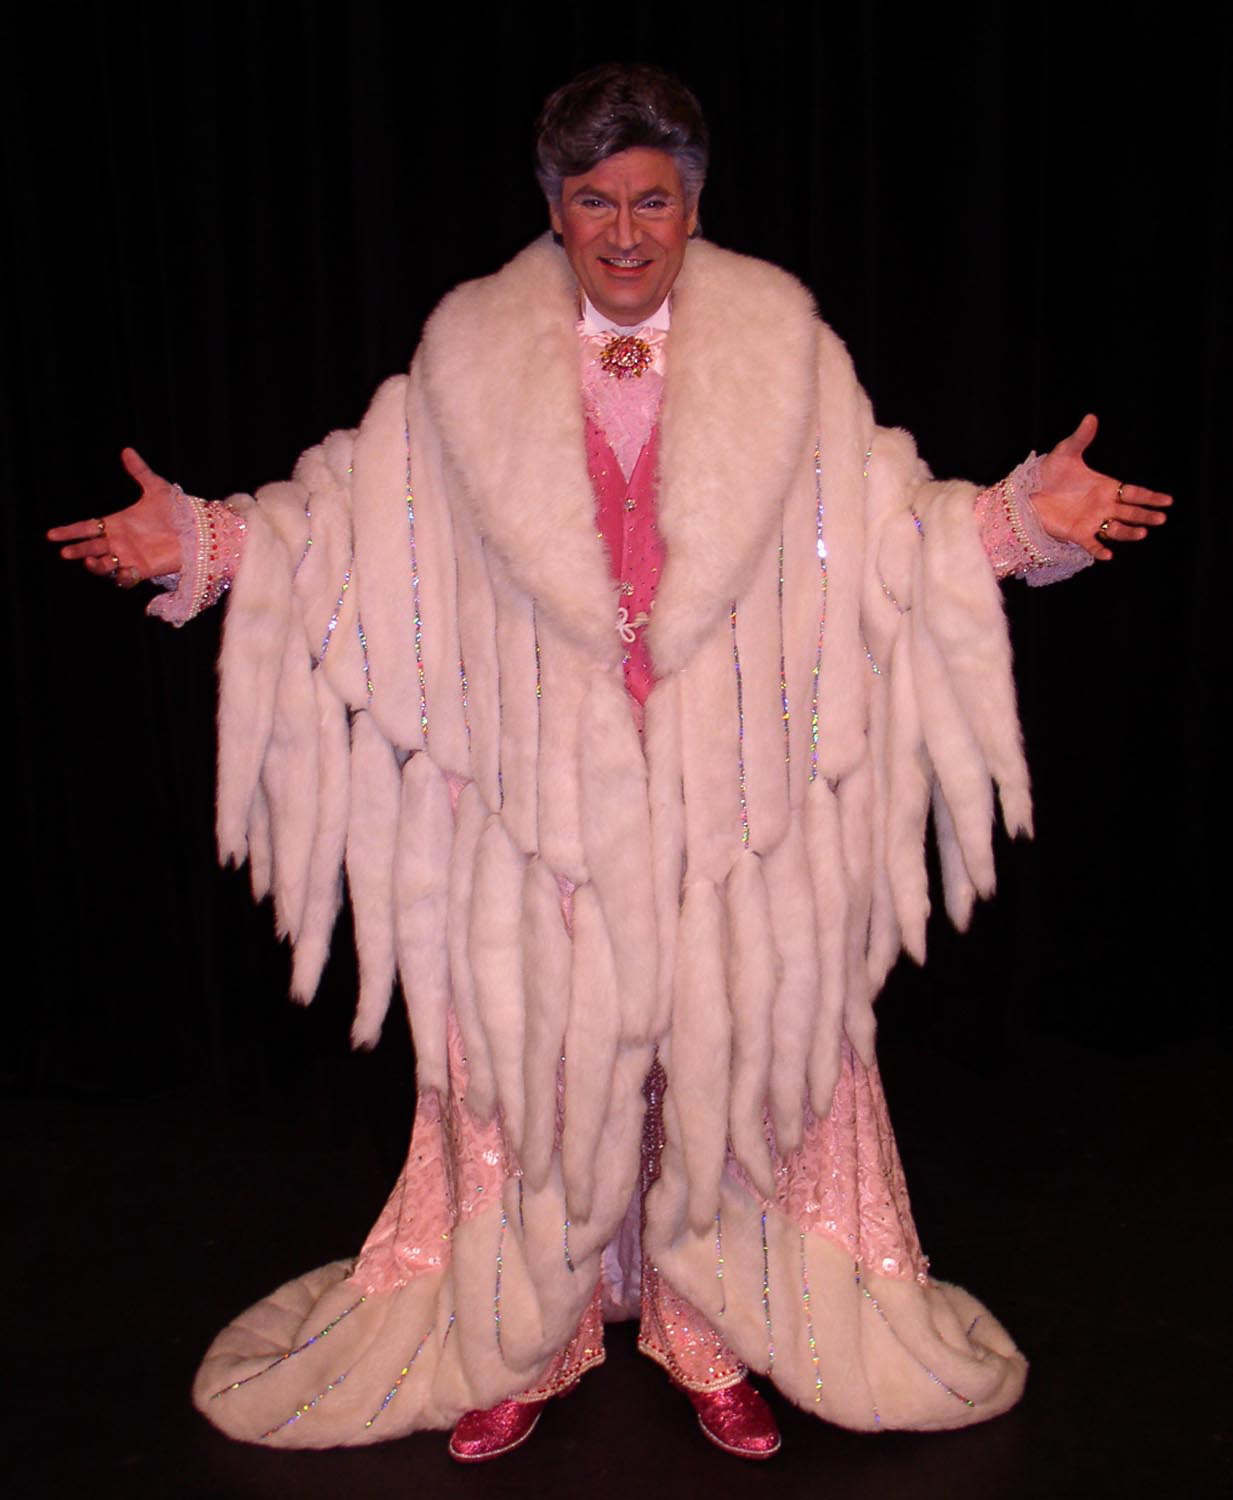 liberace When Austin first contacted CB on his favorite sex & swingers site, ...